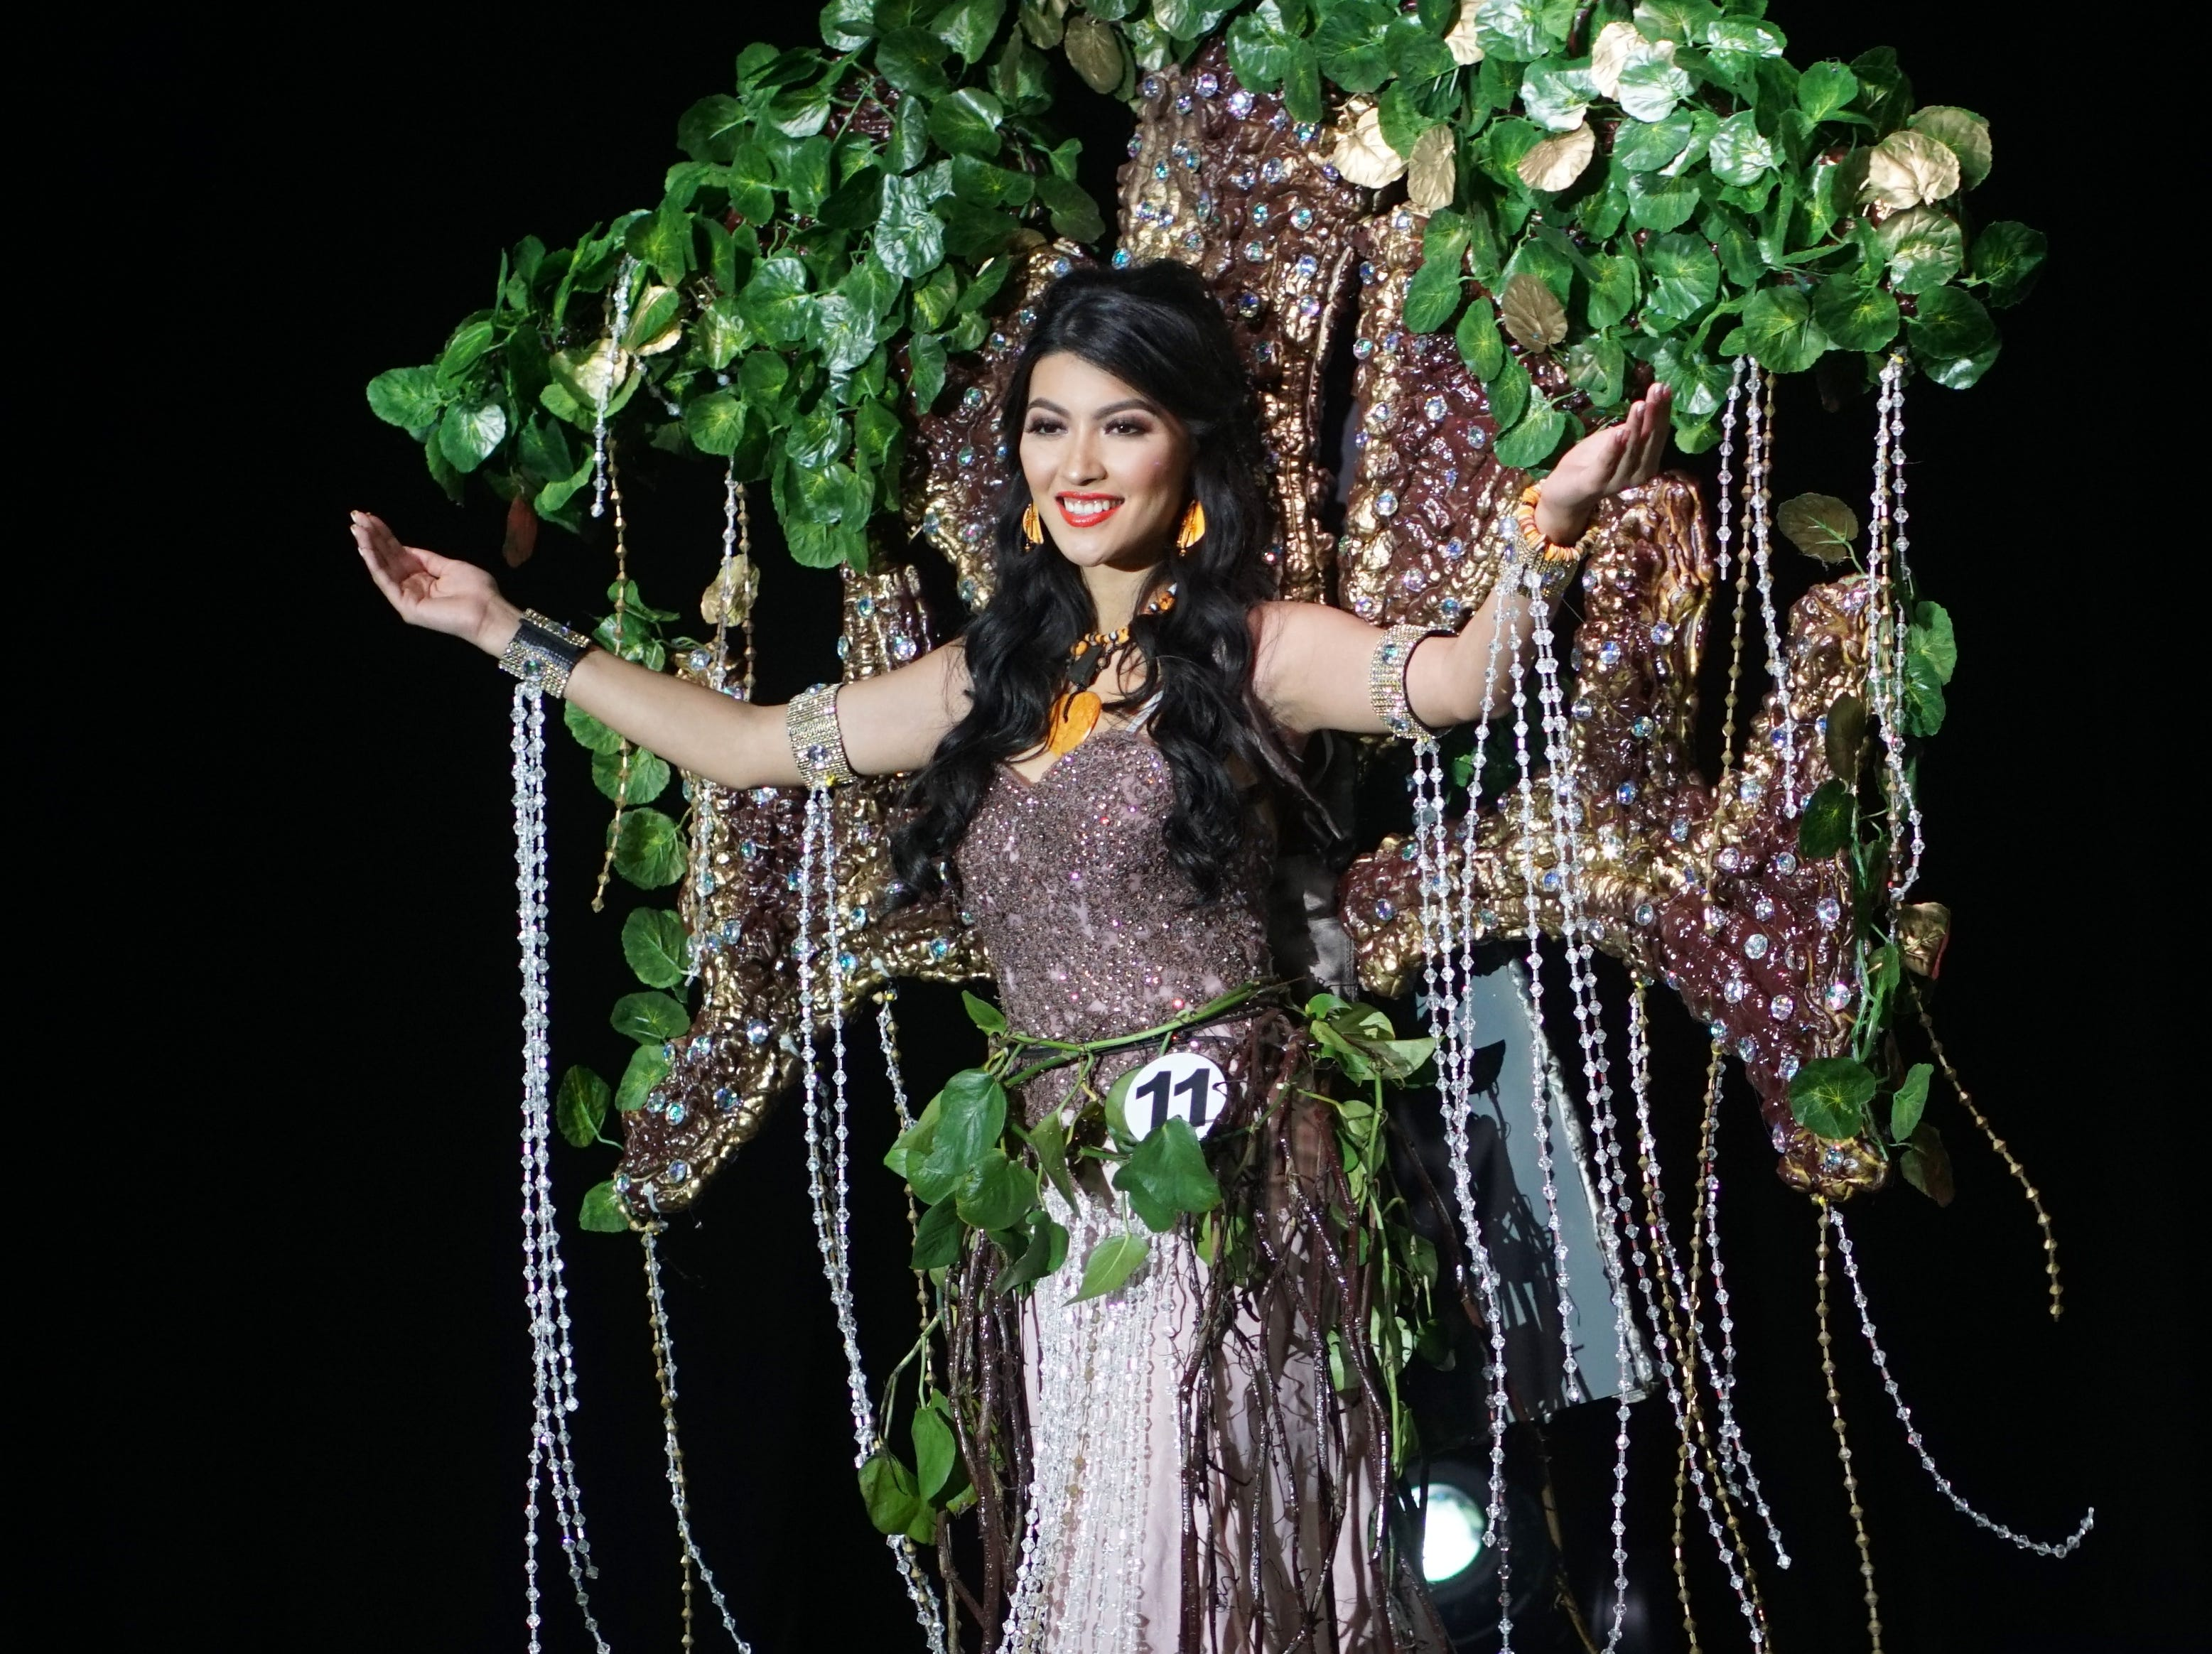 Native Costume portion of the Miss Universe Guam pageant.  Contestant 11 Cheyenne Marques Santos.  The pageant was held at  Sheraton Laguna Guam Resort.